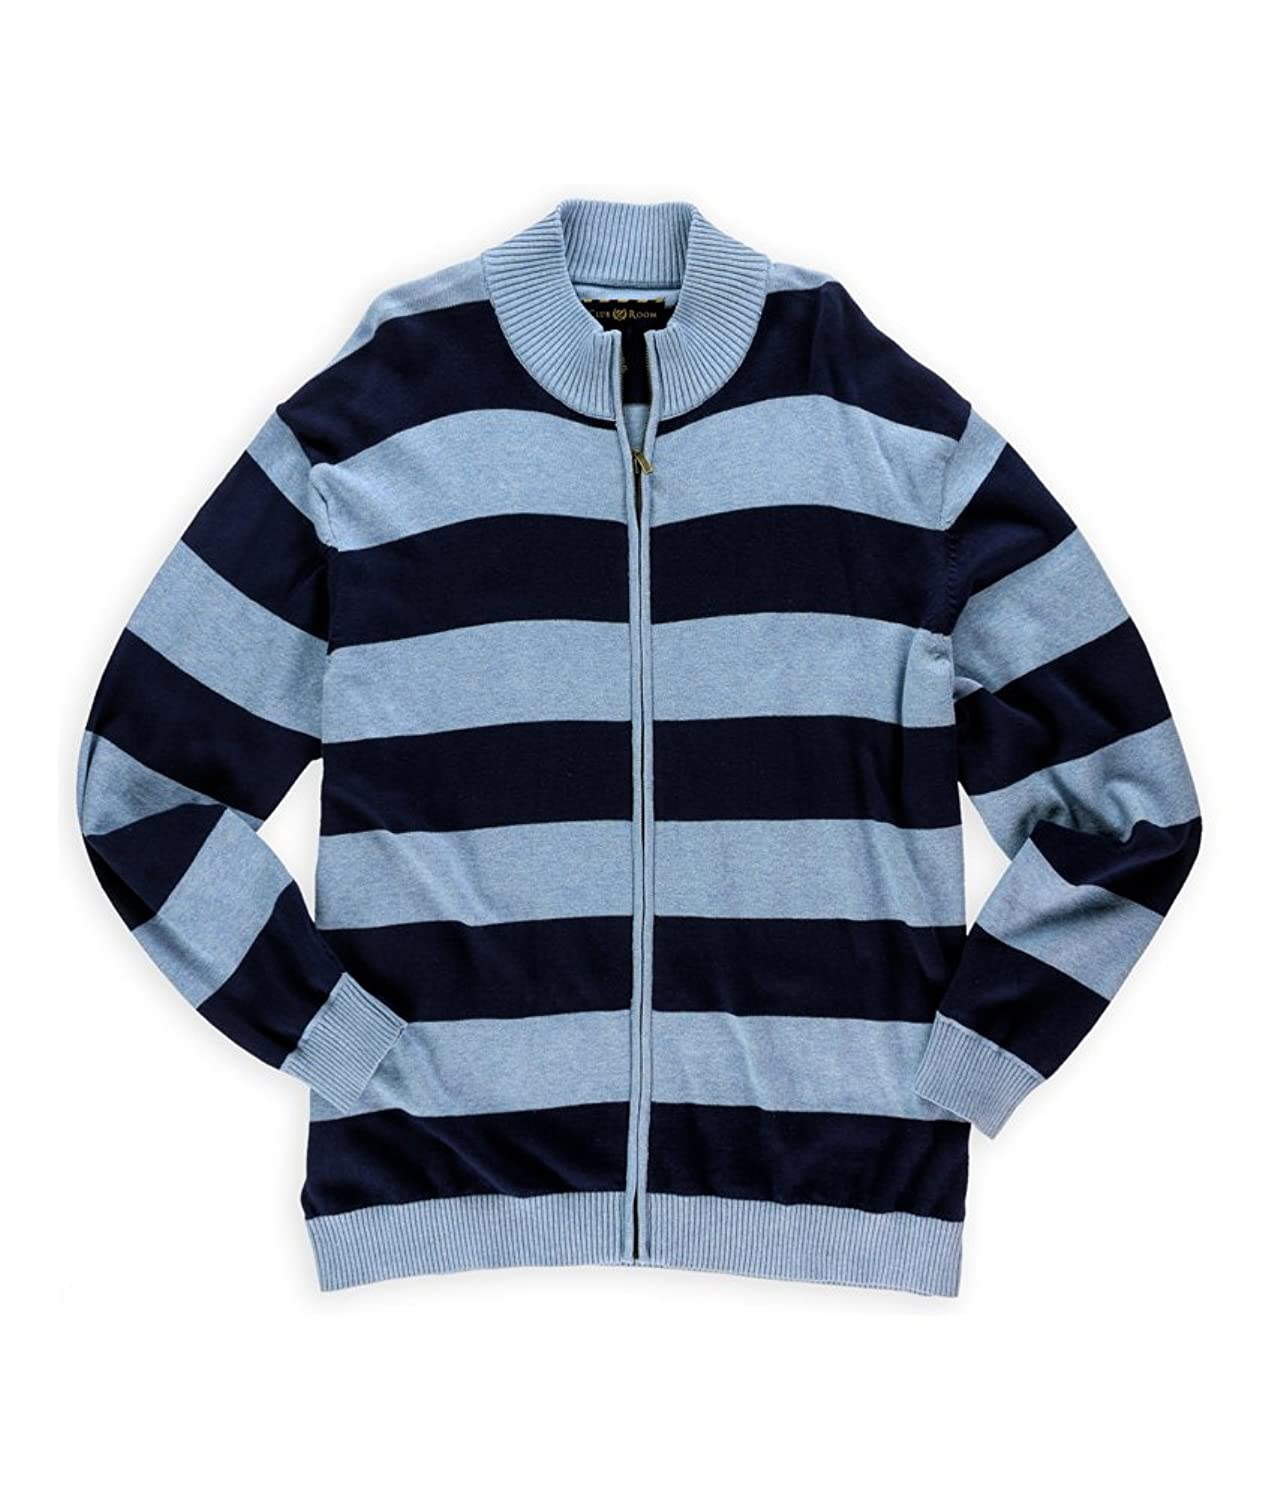 Club Room Mens Striped Knit Cardigan Sweater